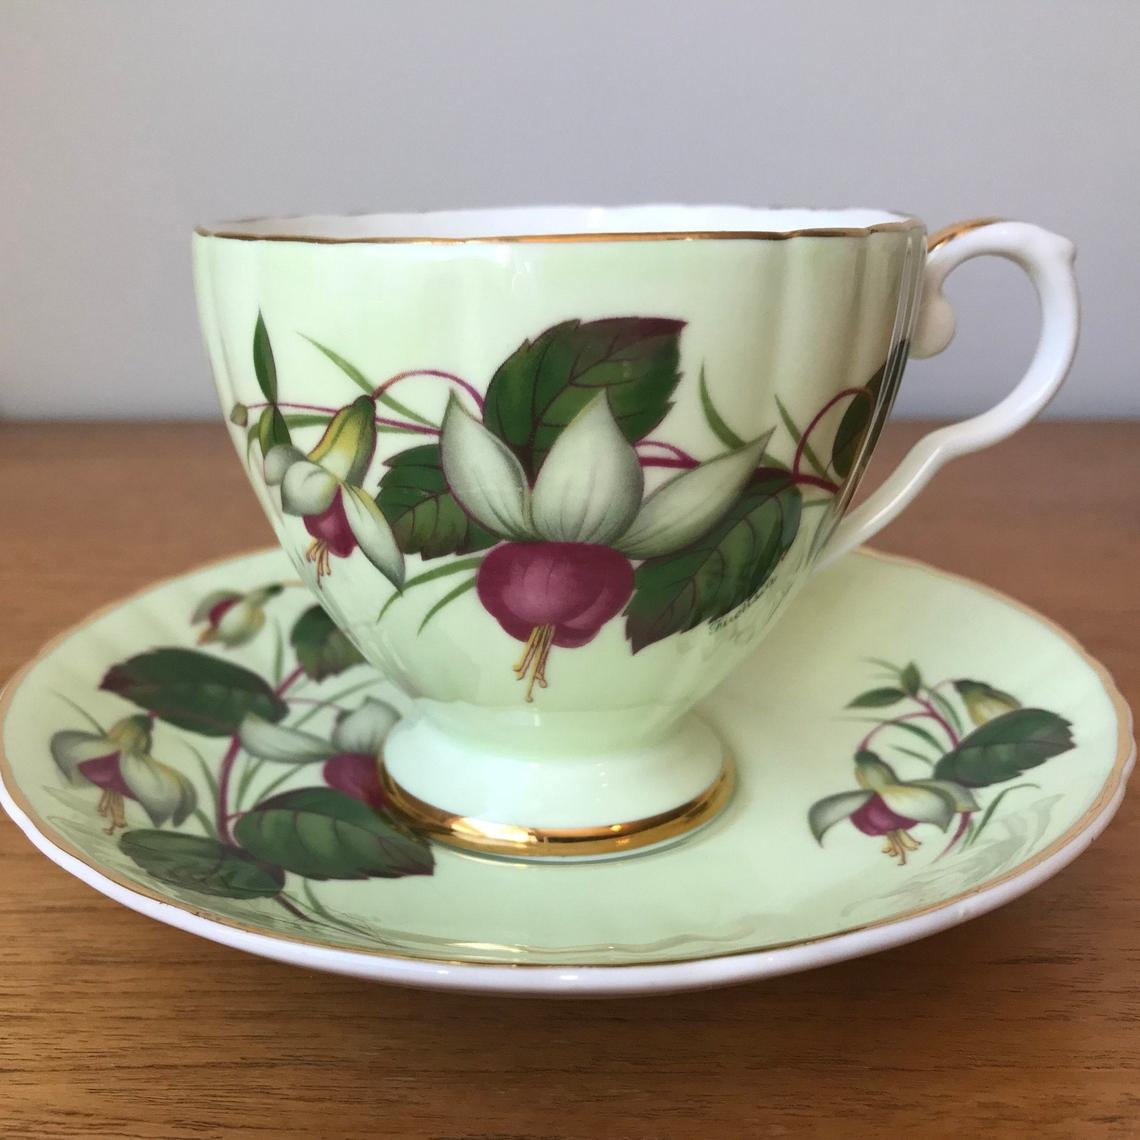 Green Tea Cup and Saucer Royal Grafton Fuchsia Flower Teacup and Saucer, Fine Bone China Collectibles